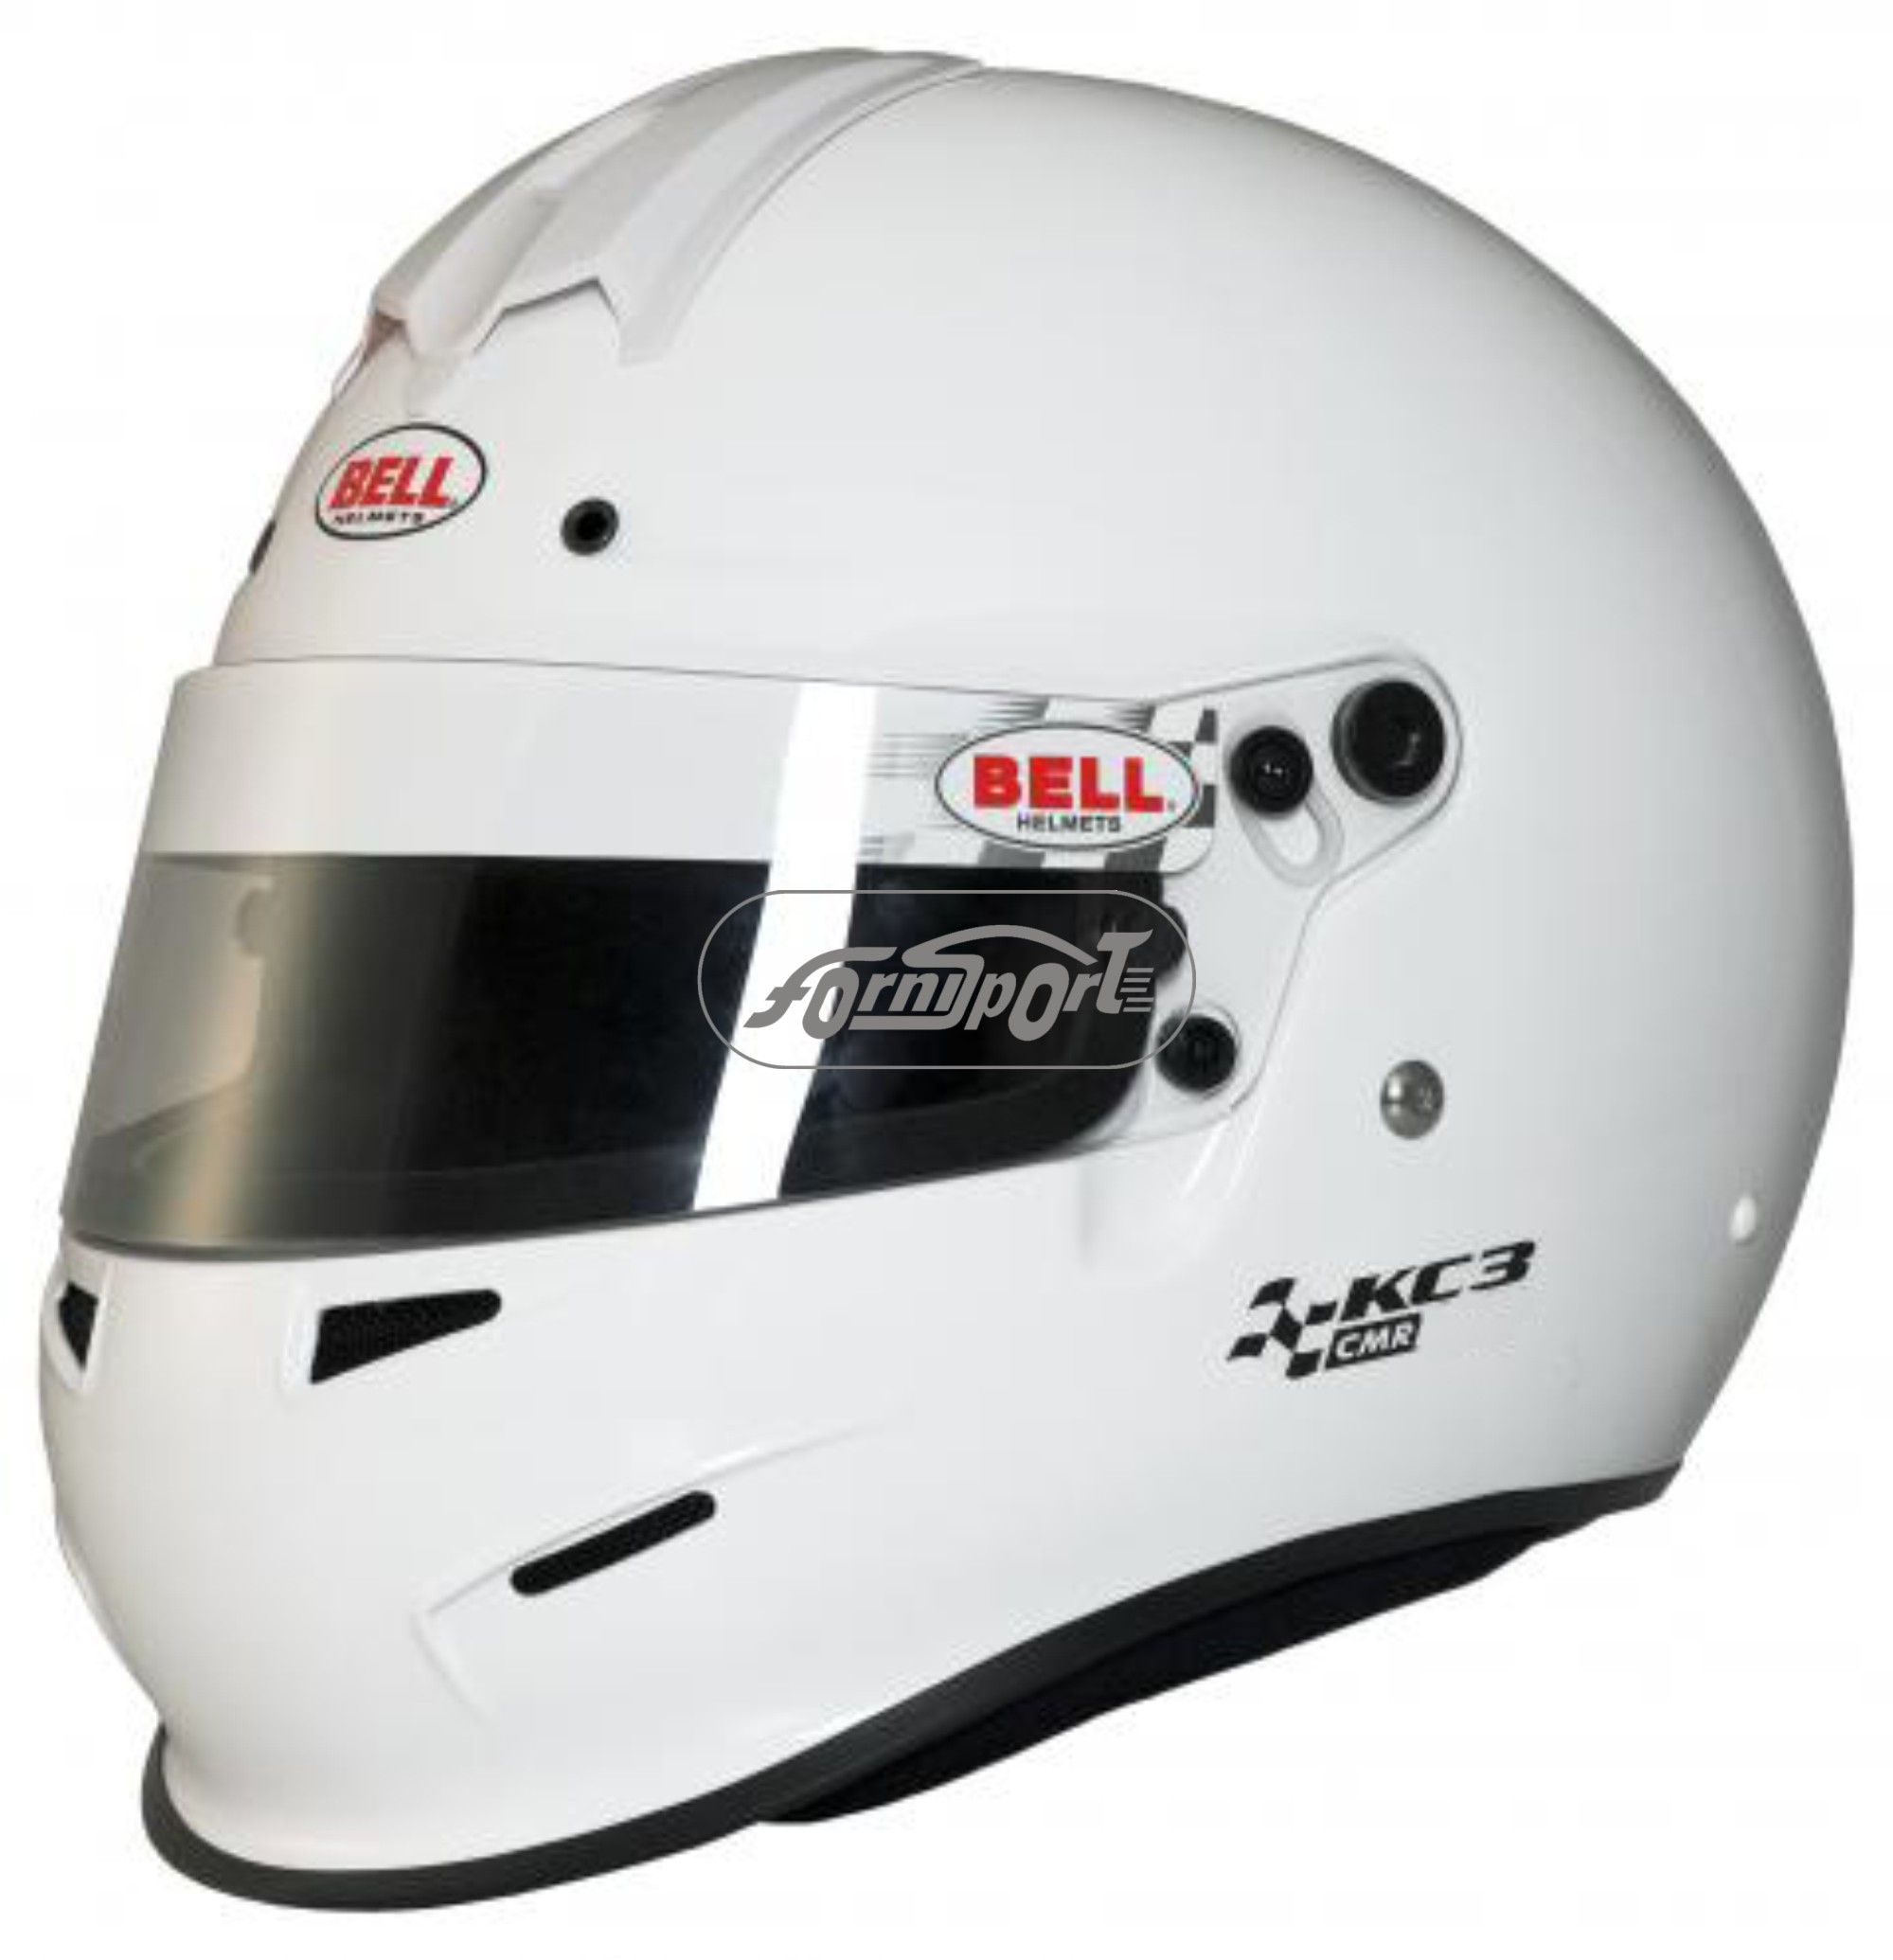 Casco FIA BELL Integral Hom KC3 T56